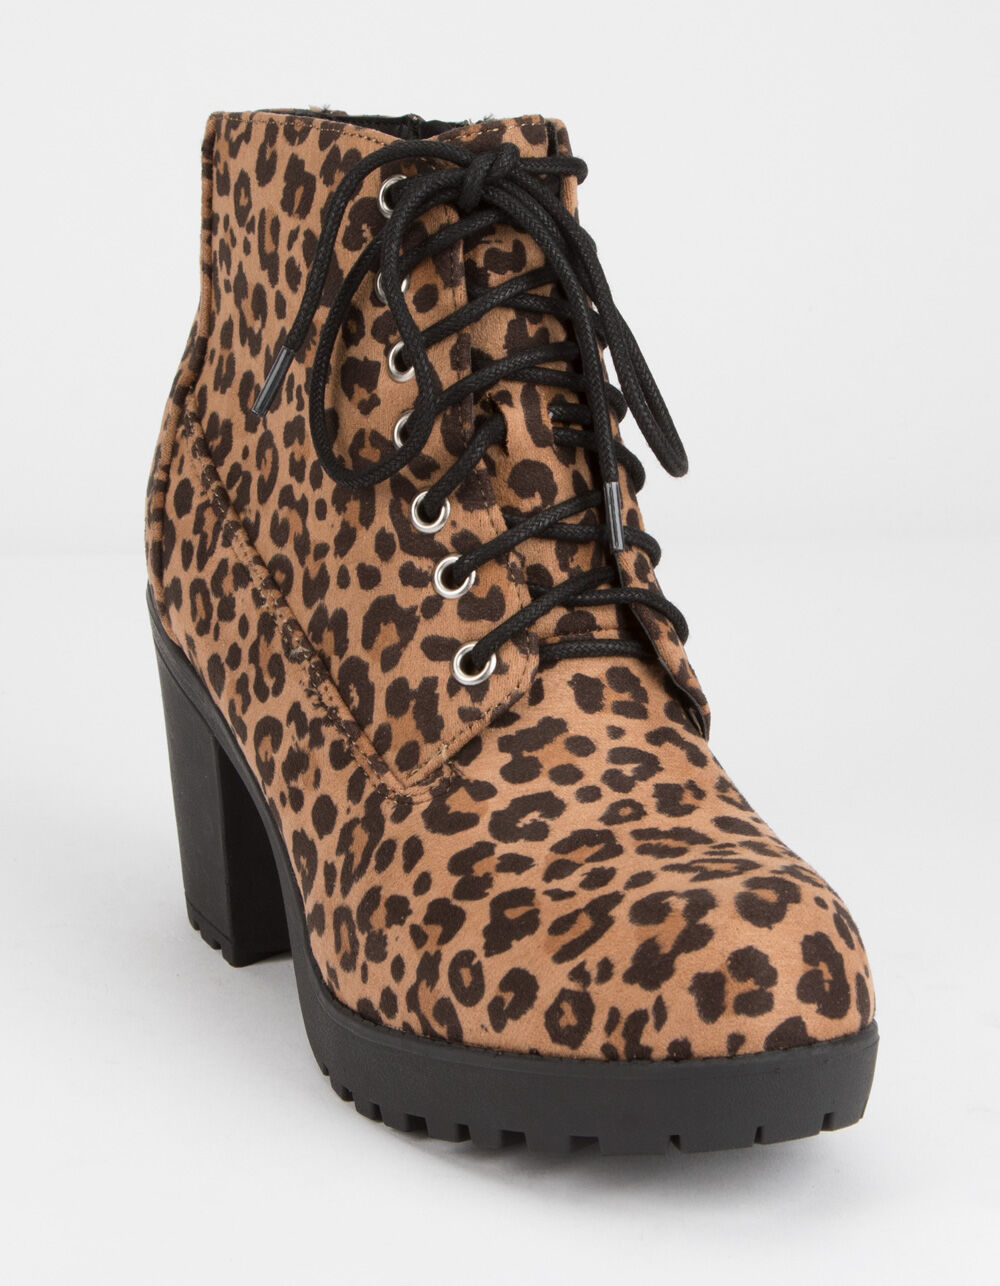 SODA Lug Sole Lace Up Leopard Booties